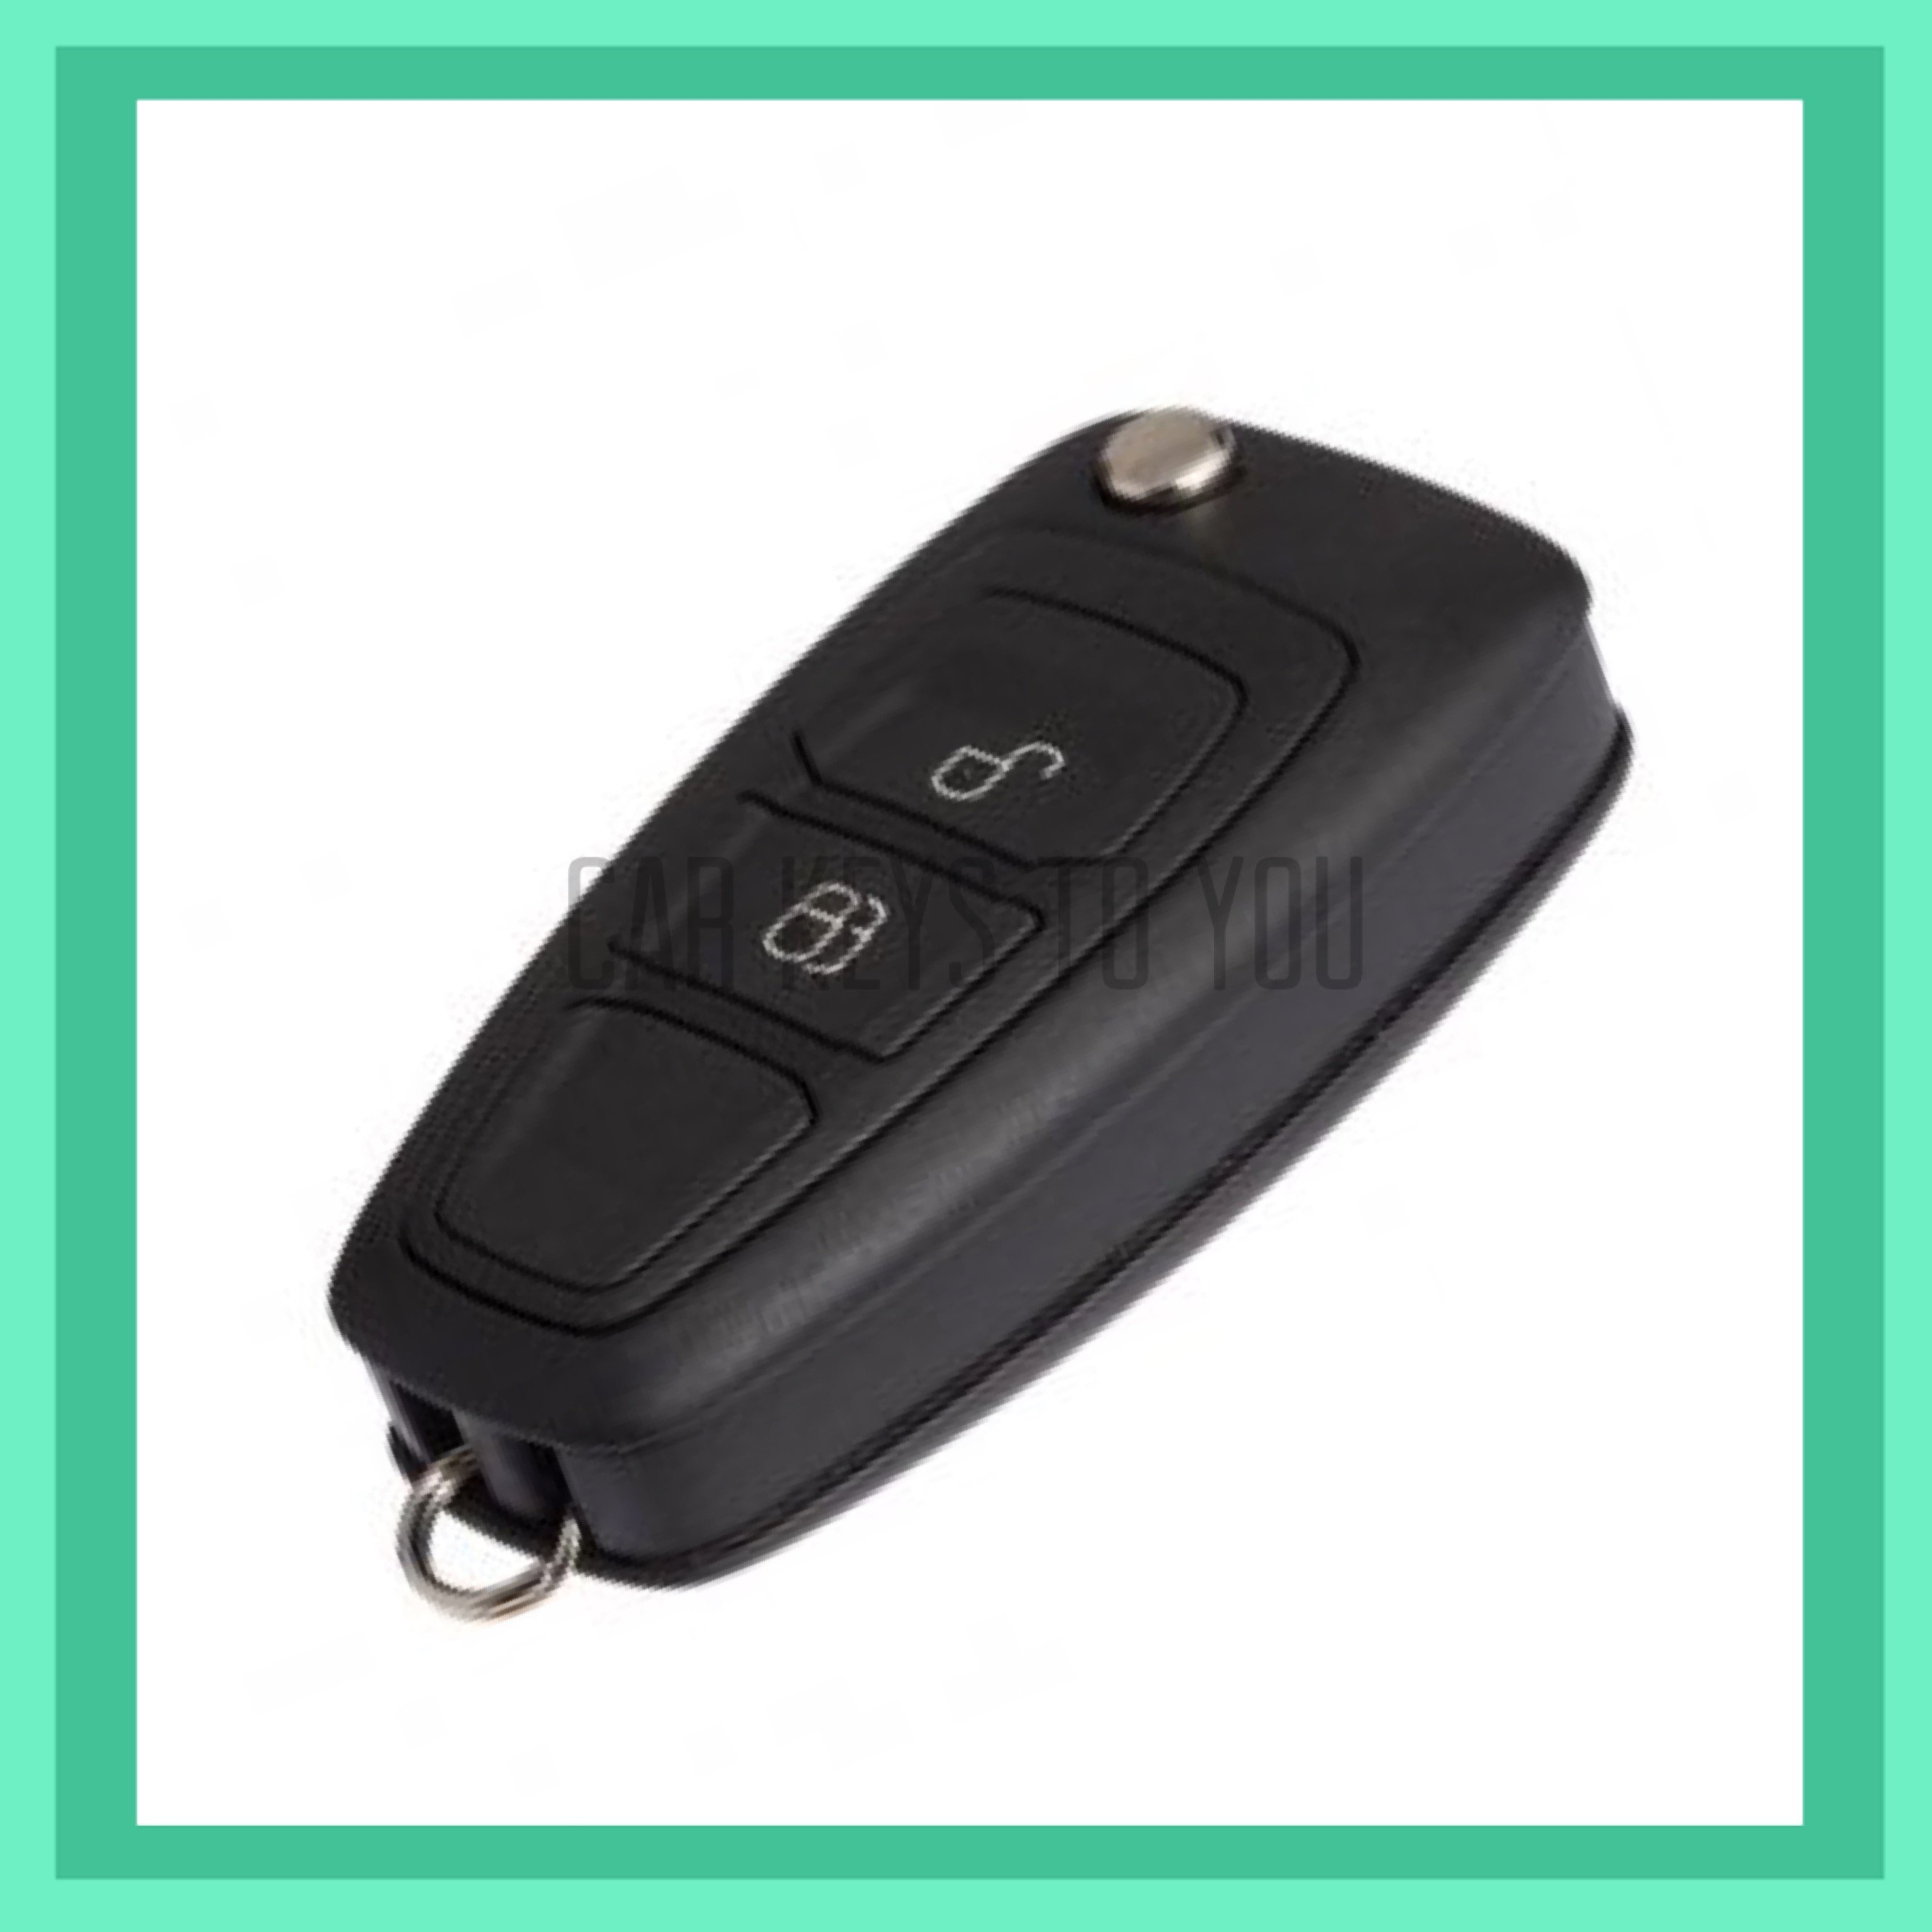 Ford Ranger Car Key and Remote, Suit PX 2011-2015